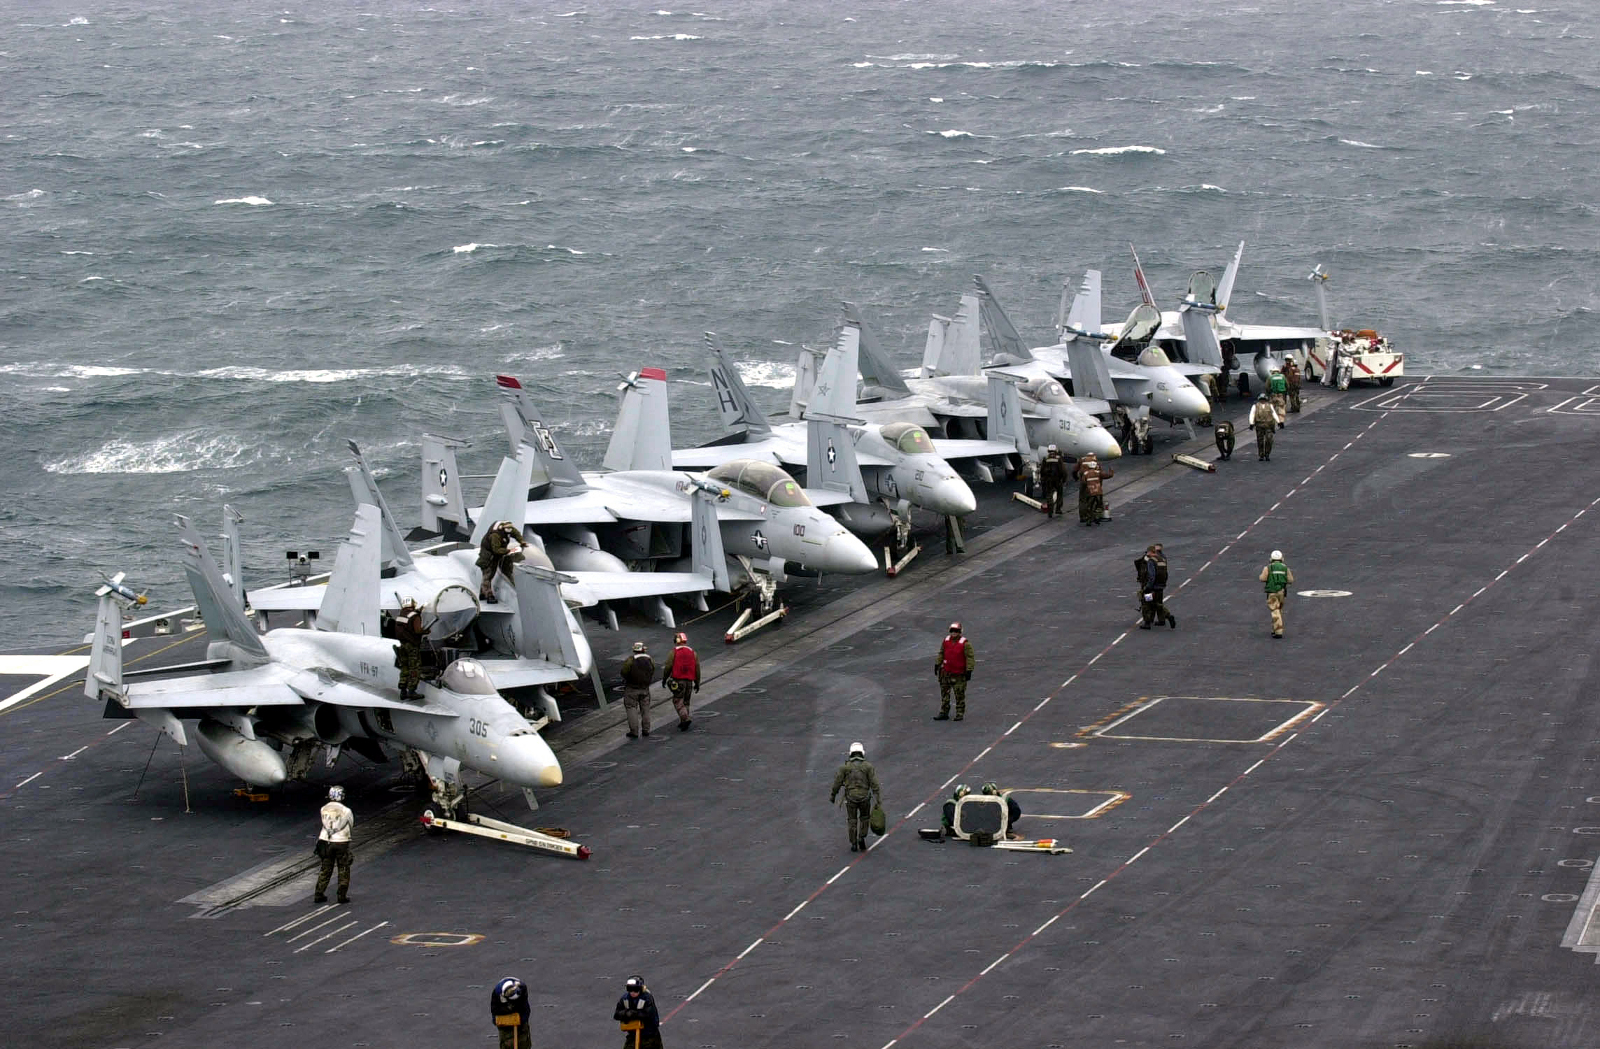 020924-N-2385R-003 At sea aboard USS Nimitz (CVN 68) Sep. 24, 2002 -- F/A-18 ÒHornetsÓ and ÒSuper HornetsÓ stand ready on the shipÕs flight deck awaiting their next combat mission.  Nimitz is currently conducting Tailored Ships Training Availability (TSTA) Two and Three off the coast of California, designed to help integrate the ship and embarked air wing while preparing for future deployments.  U.S. Navy photo by PhotographerÕs Mate 3rd Class Yesenia Rosas.  (RELEASED)